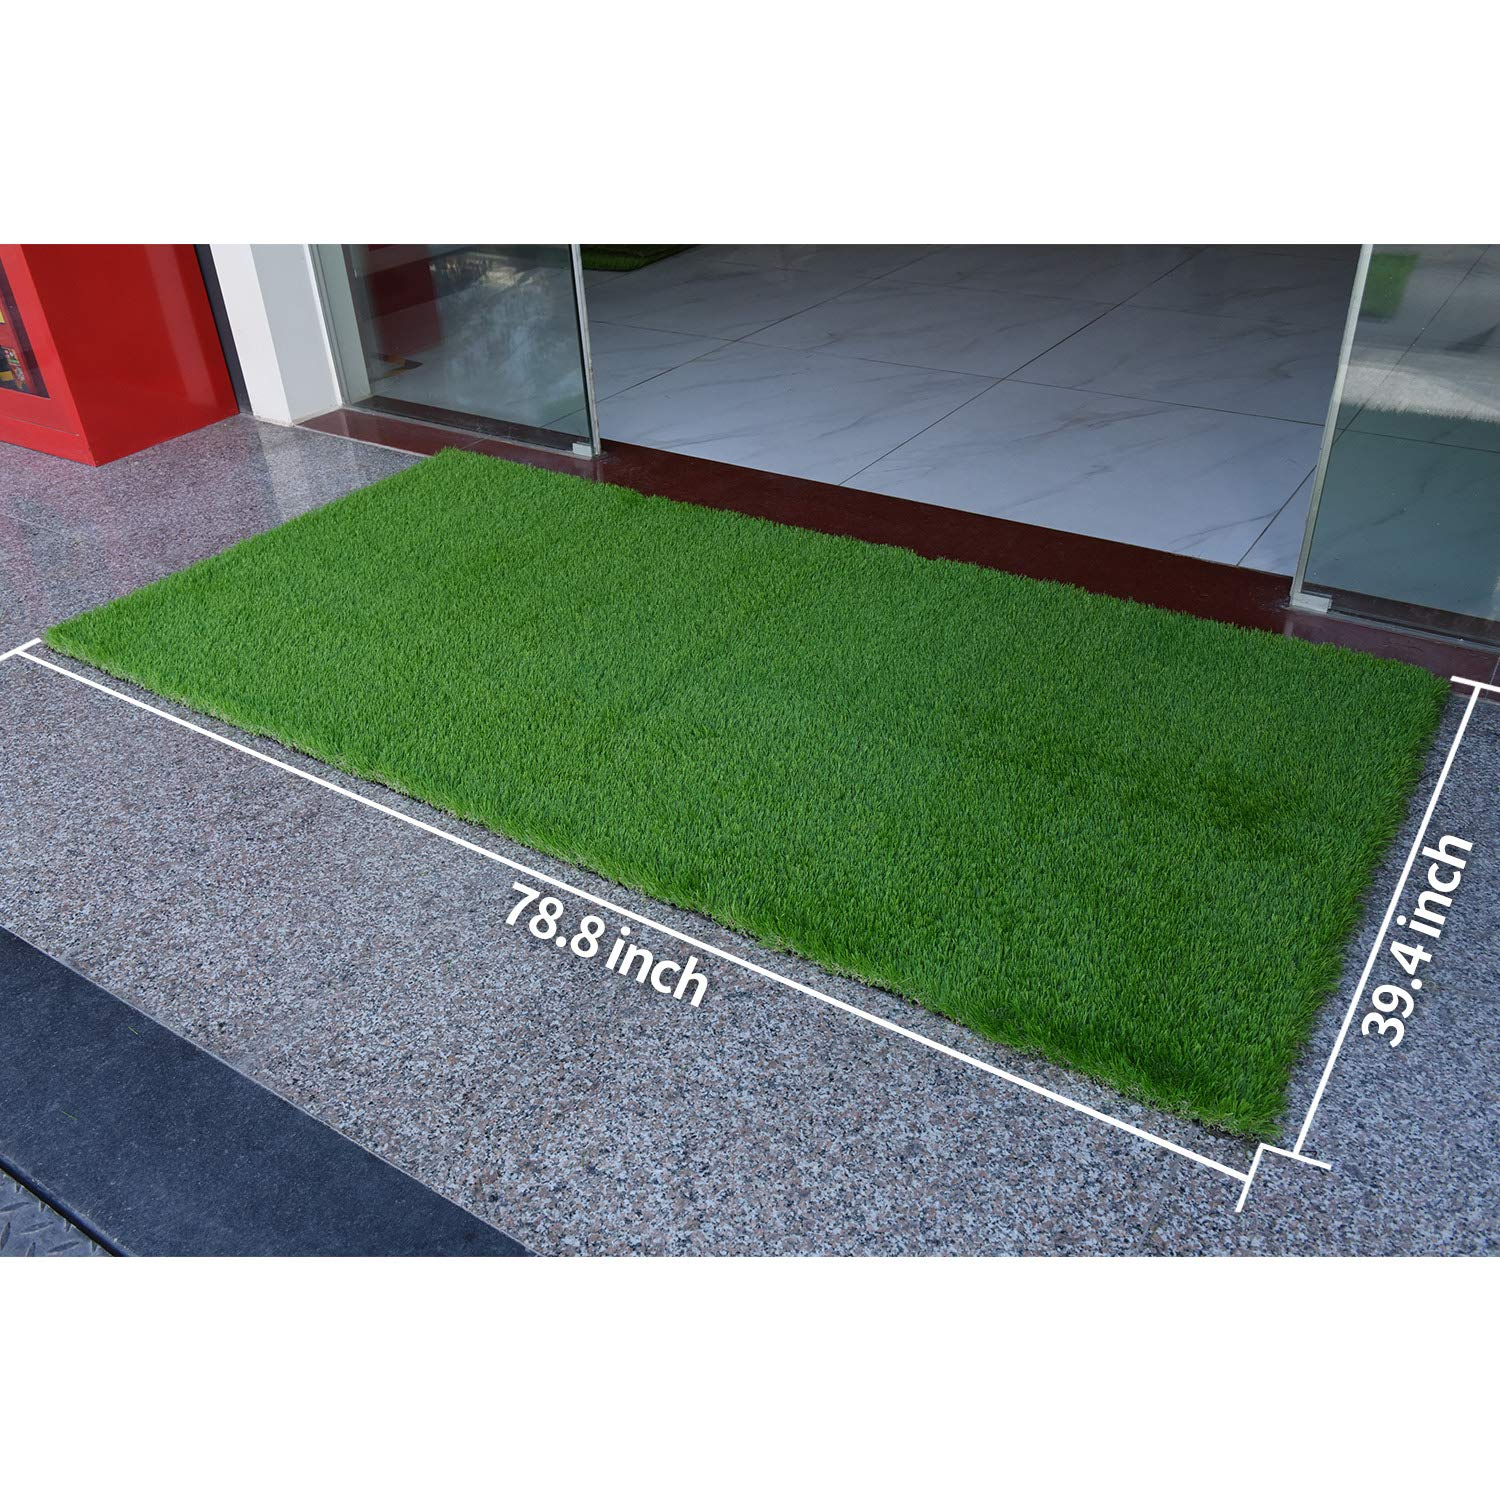 RoundLove Artificial Grass Turf Patch 1 4 Tone Synthetic Grass Mat w//Drainage Holes /& Rubber Backing Fake Turf for Indoor /& Outdoor Patio Decor Lush /& Hard for Indoor /& Outdoor Decor theLittleHouseUS Lush /& Hard Pet Turf Astroturf Rug